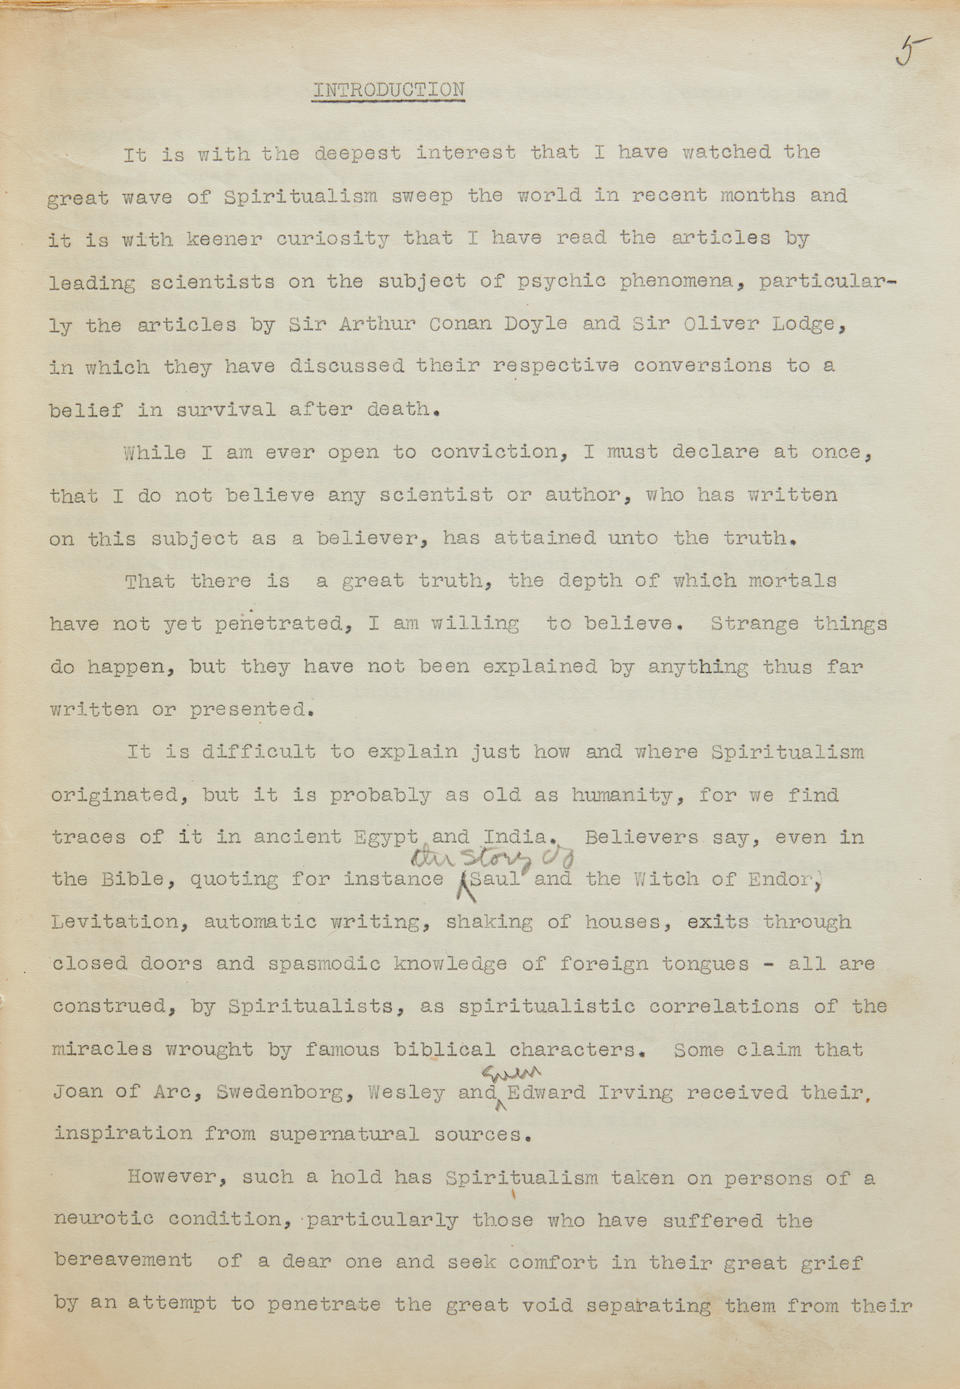 """ORIGINAL FULL-LENGTH HOUDINI TYPED MANUSCRIPT, HEAVILY ANNOTATED. HOUDINI, HARRY. 1874-1926. Annotated Typescript Signed (""""Harry Houdini""""), for Magician Among the Spirits, heavily annotated with autograph emendations by Houdini,"""